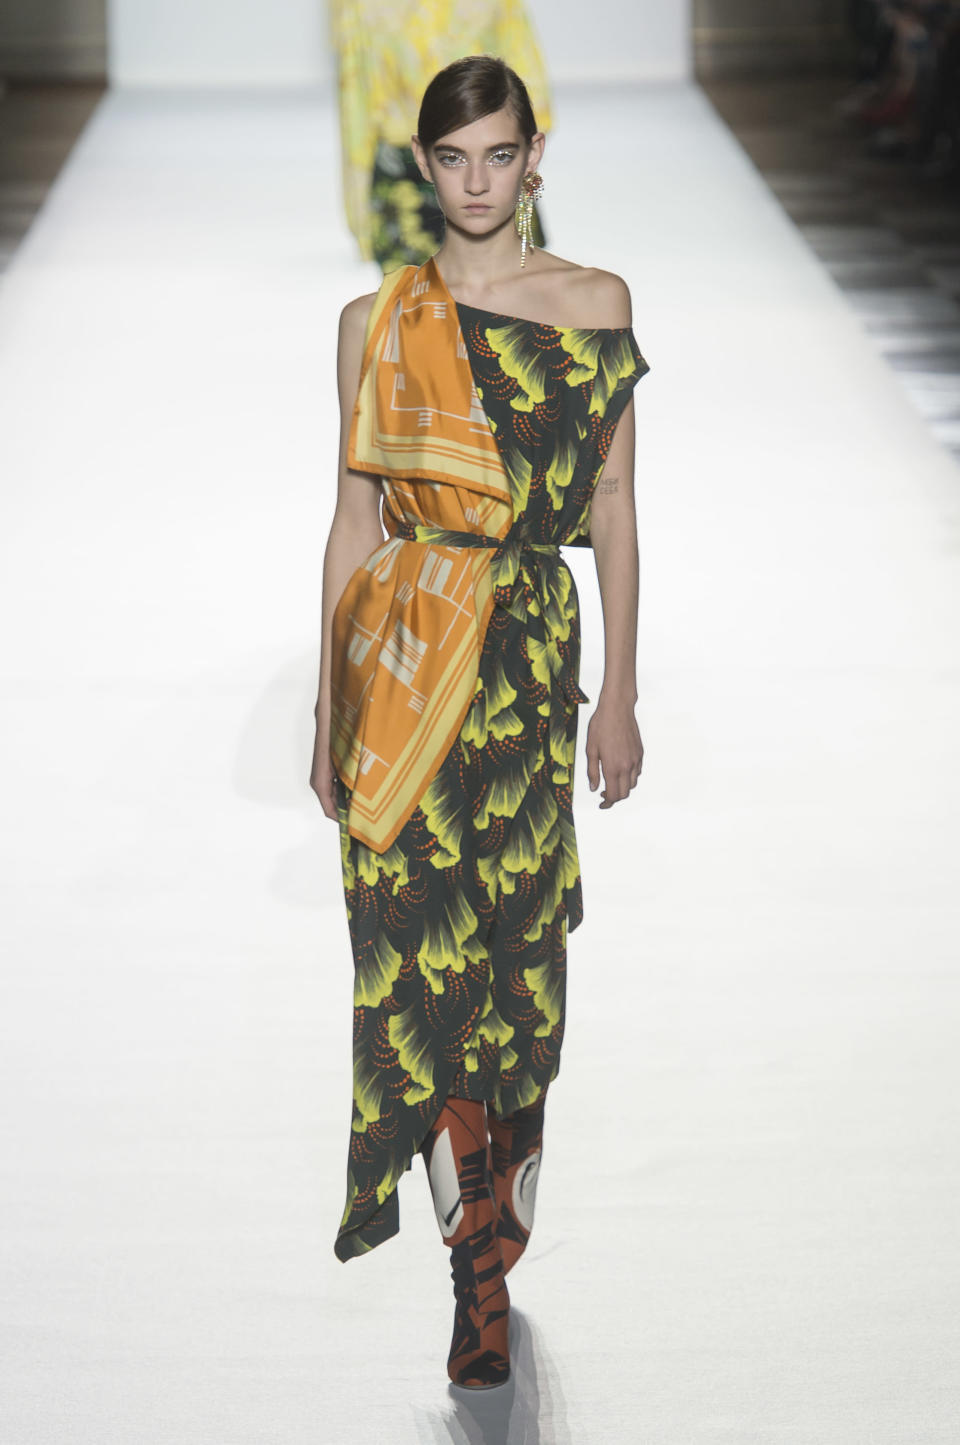 <p><i>Orange and green print dress from the SS18 Dries Van Noten collection. (Photo: ImaxTree) </i></p>